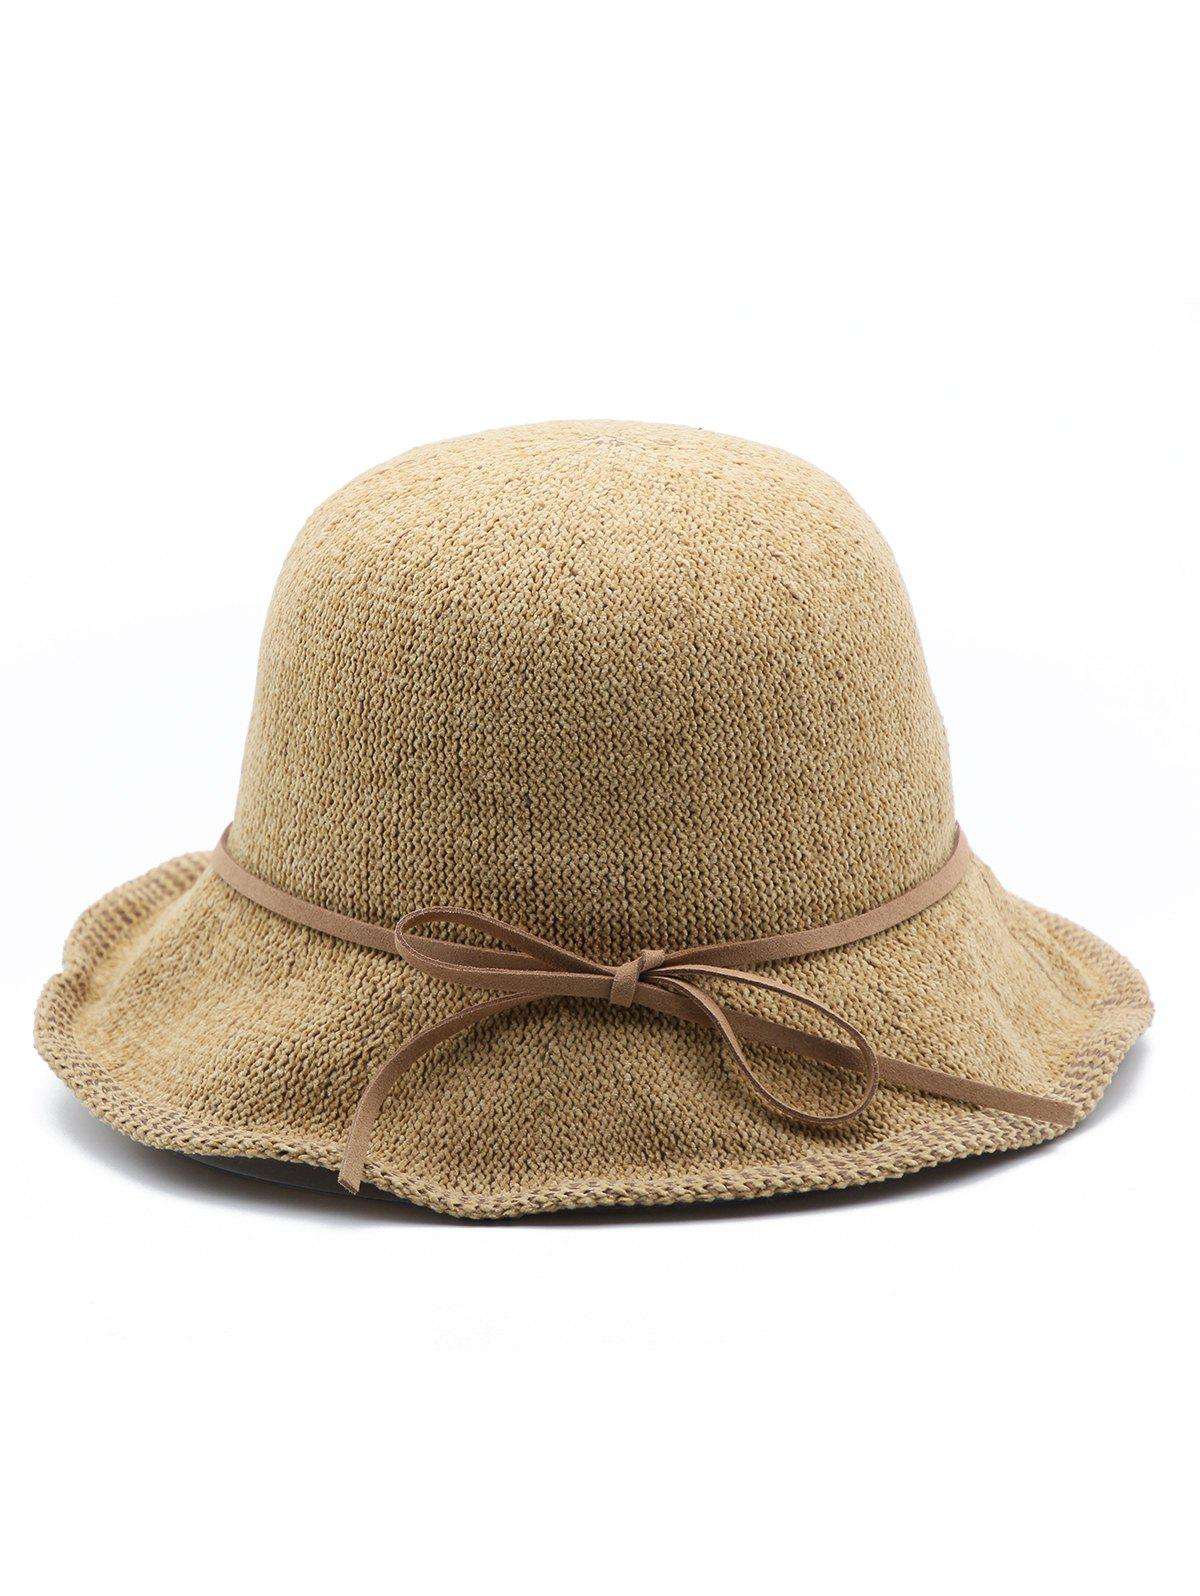 9c9201fe173a4 2019 Bowknot Solid Color Elegant Buckle Hat